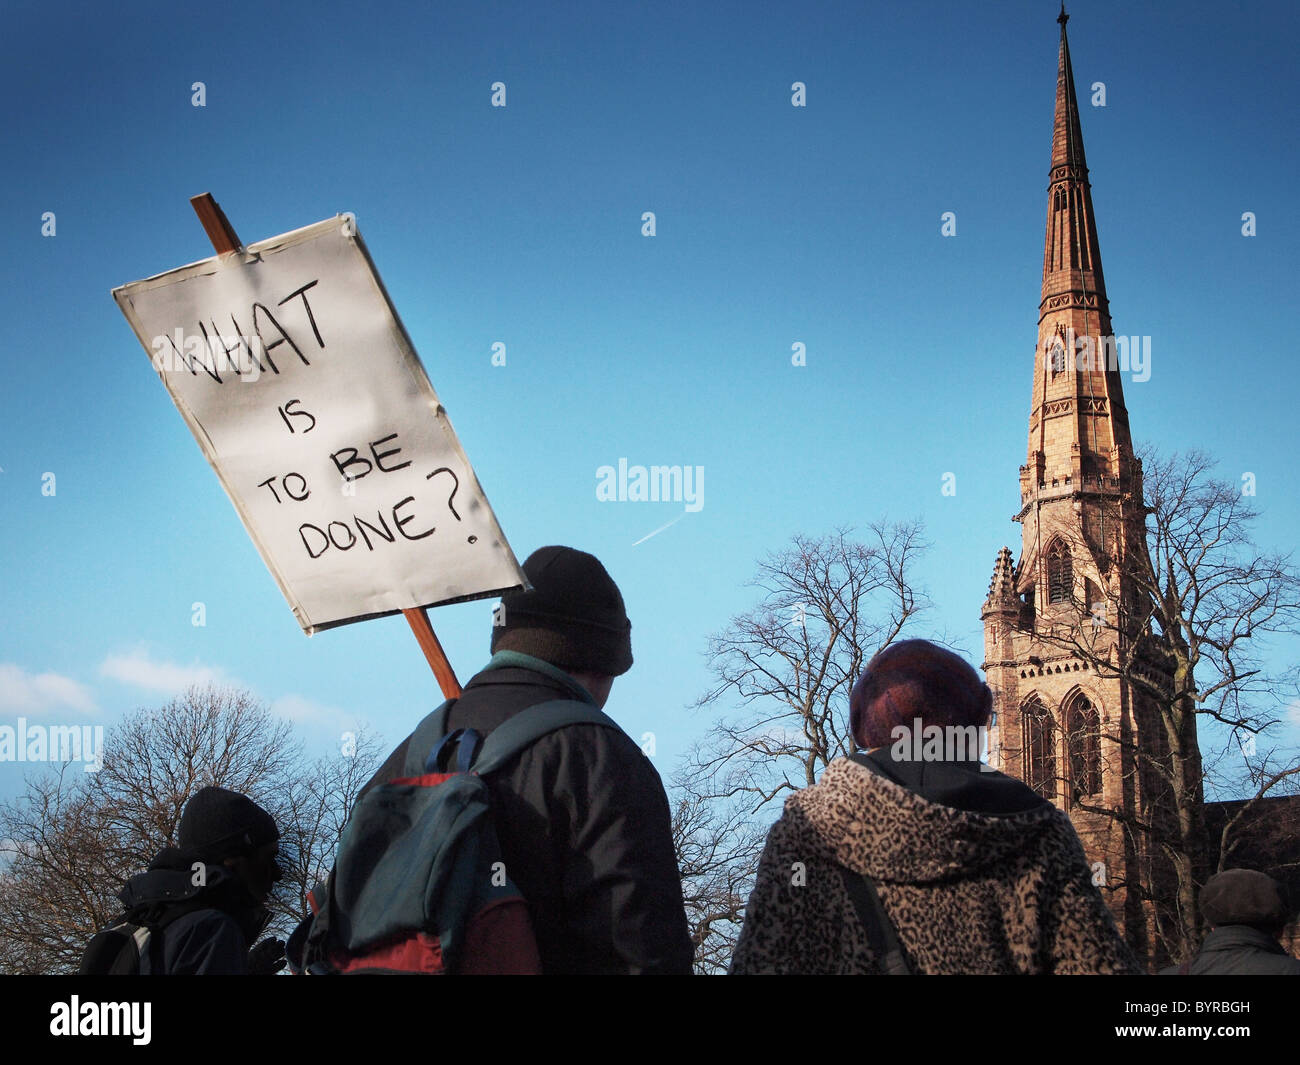 OLYMPUS DIGITAL CAMERA Students protesting against tuition fee rises with banner through Manchester - Stock Image